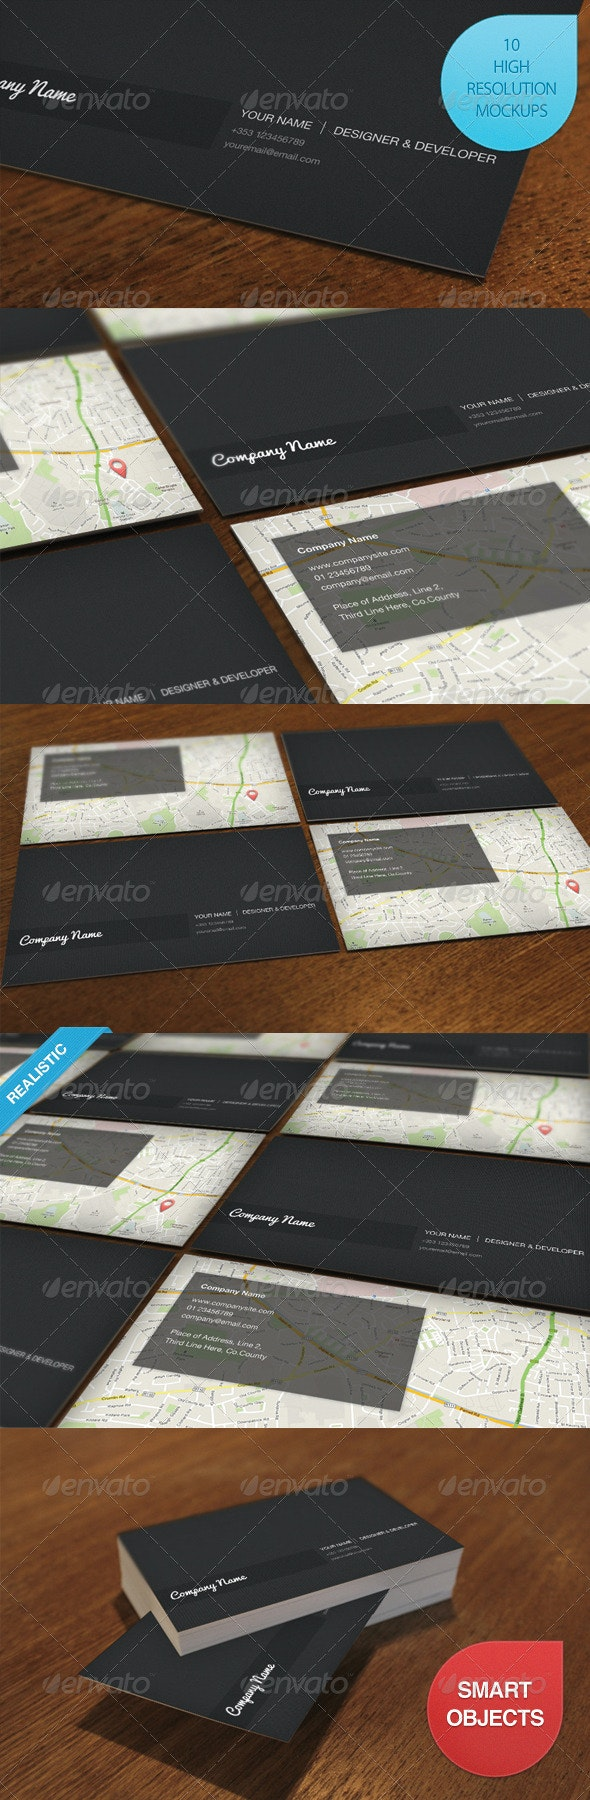 10 Photo Realistic Business Card Mockups - Business Cards Print